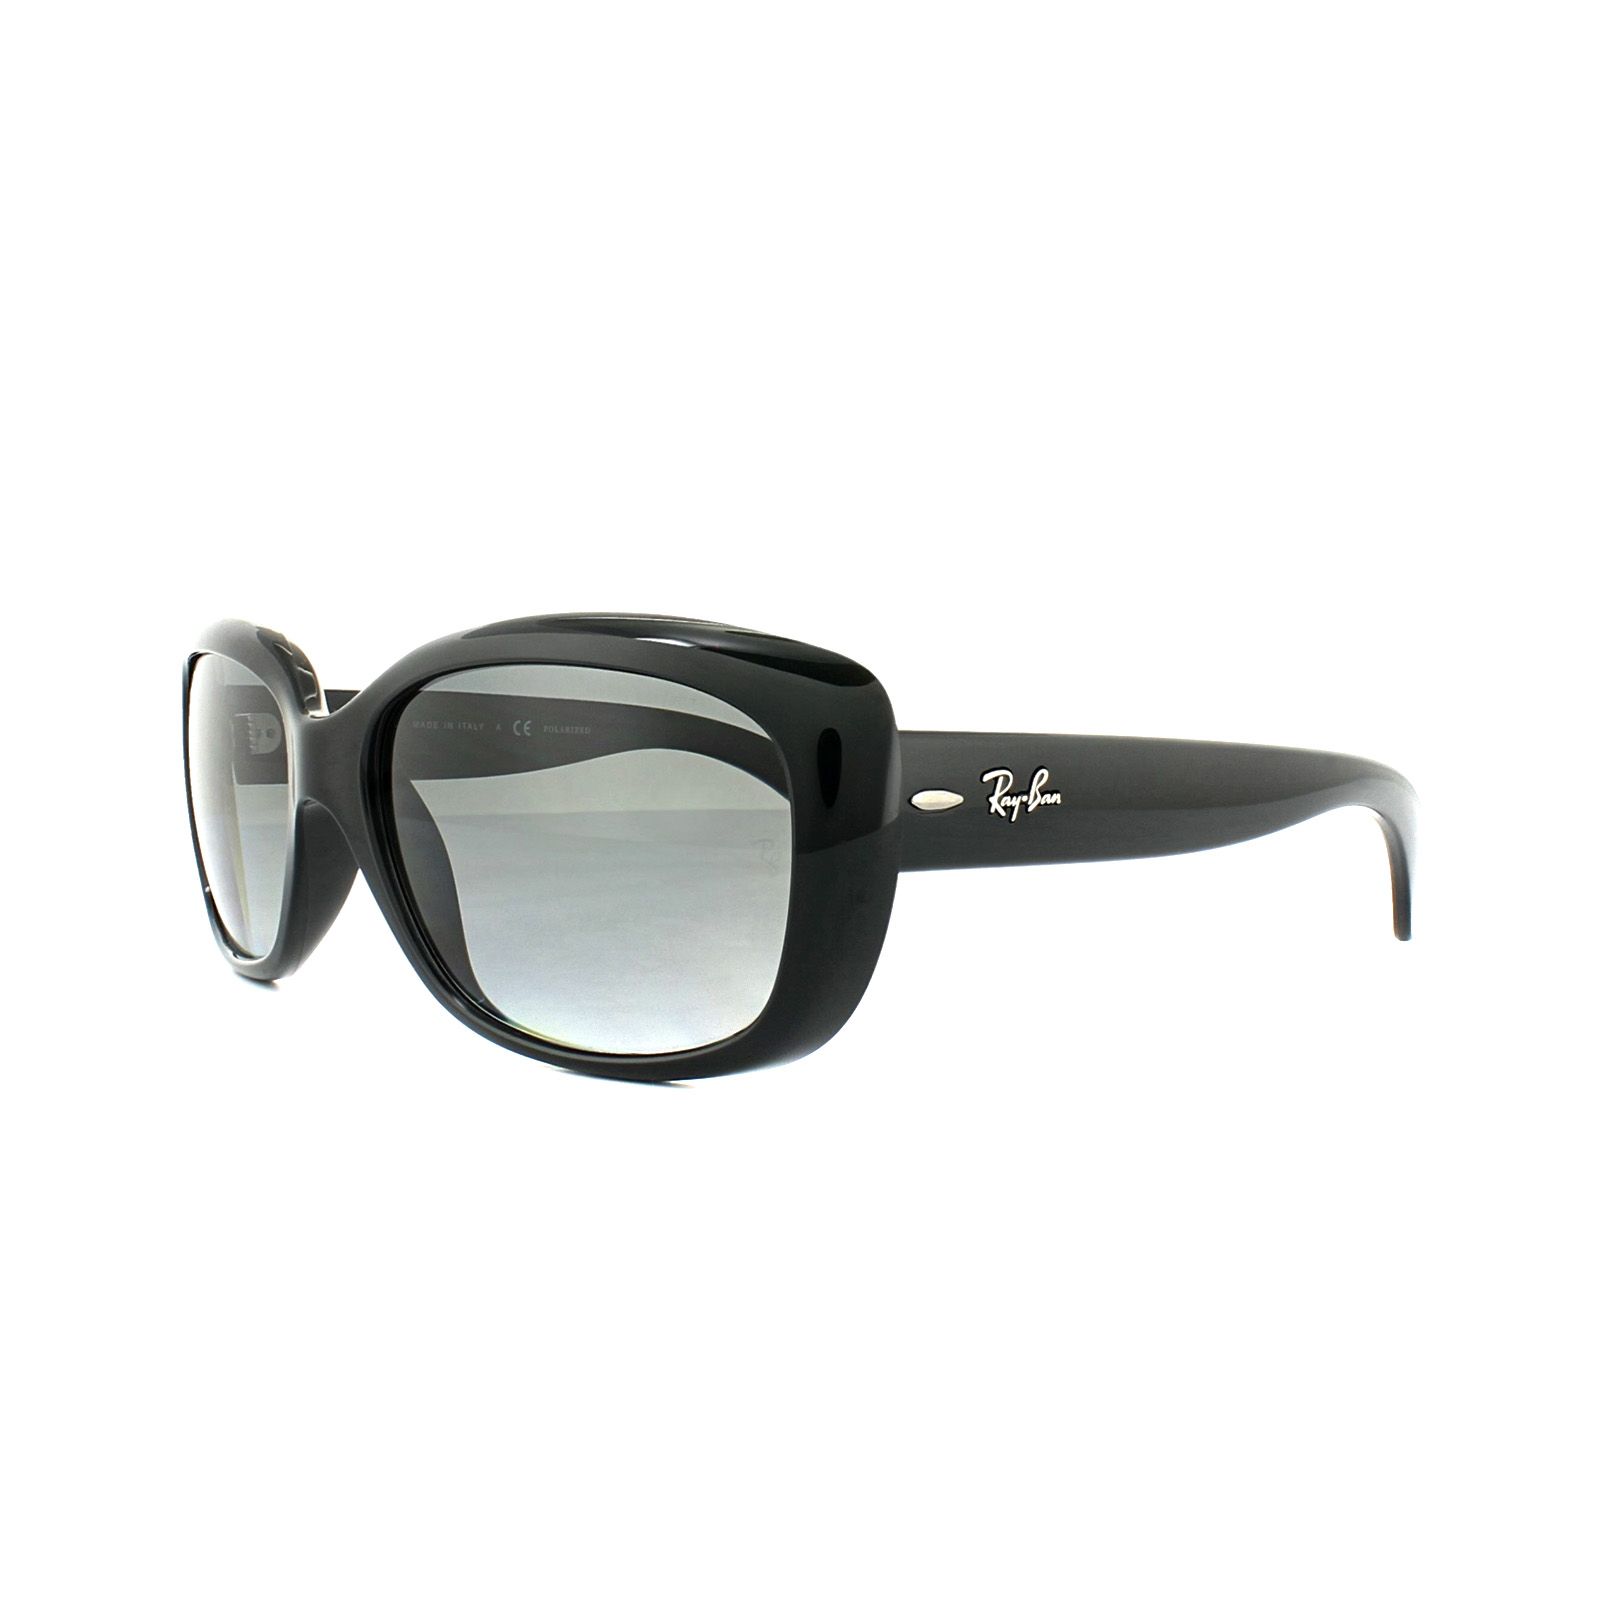 3264e903df Details about Ray-Ban Sunglasses Jackie Ohh 4101 601 T3 Shiny Black Grey  Gradient Polarized